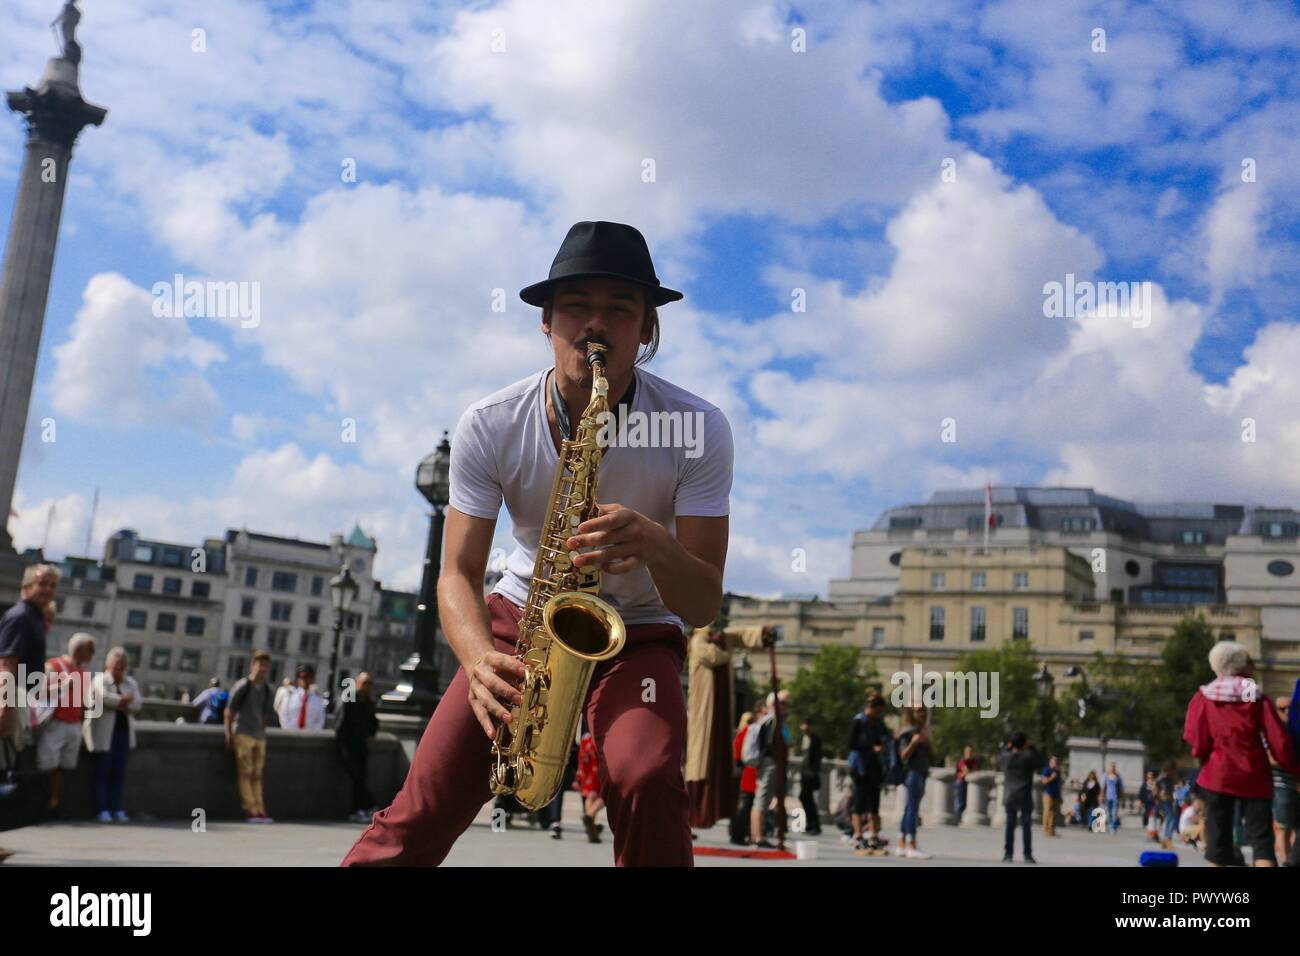 Jazz Busker playing Saxophone in front of the National Gallery, Trafalgar Square, London. - Stock Image